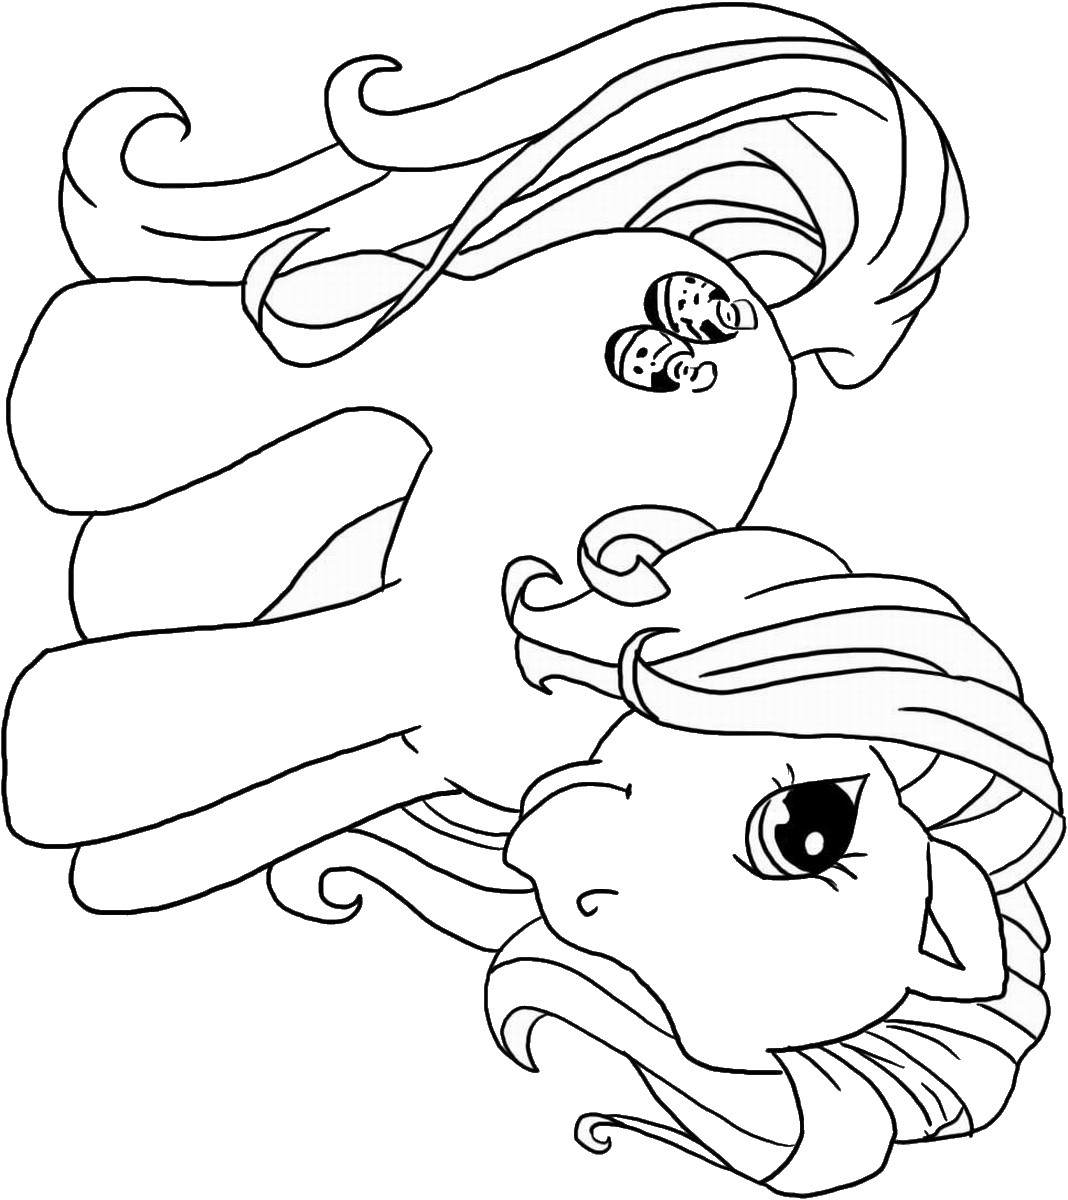 coloring page my little pony coloring pages my little pony coloring pages free and little my page coloring pony